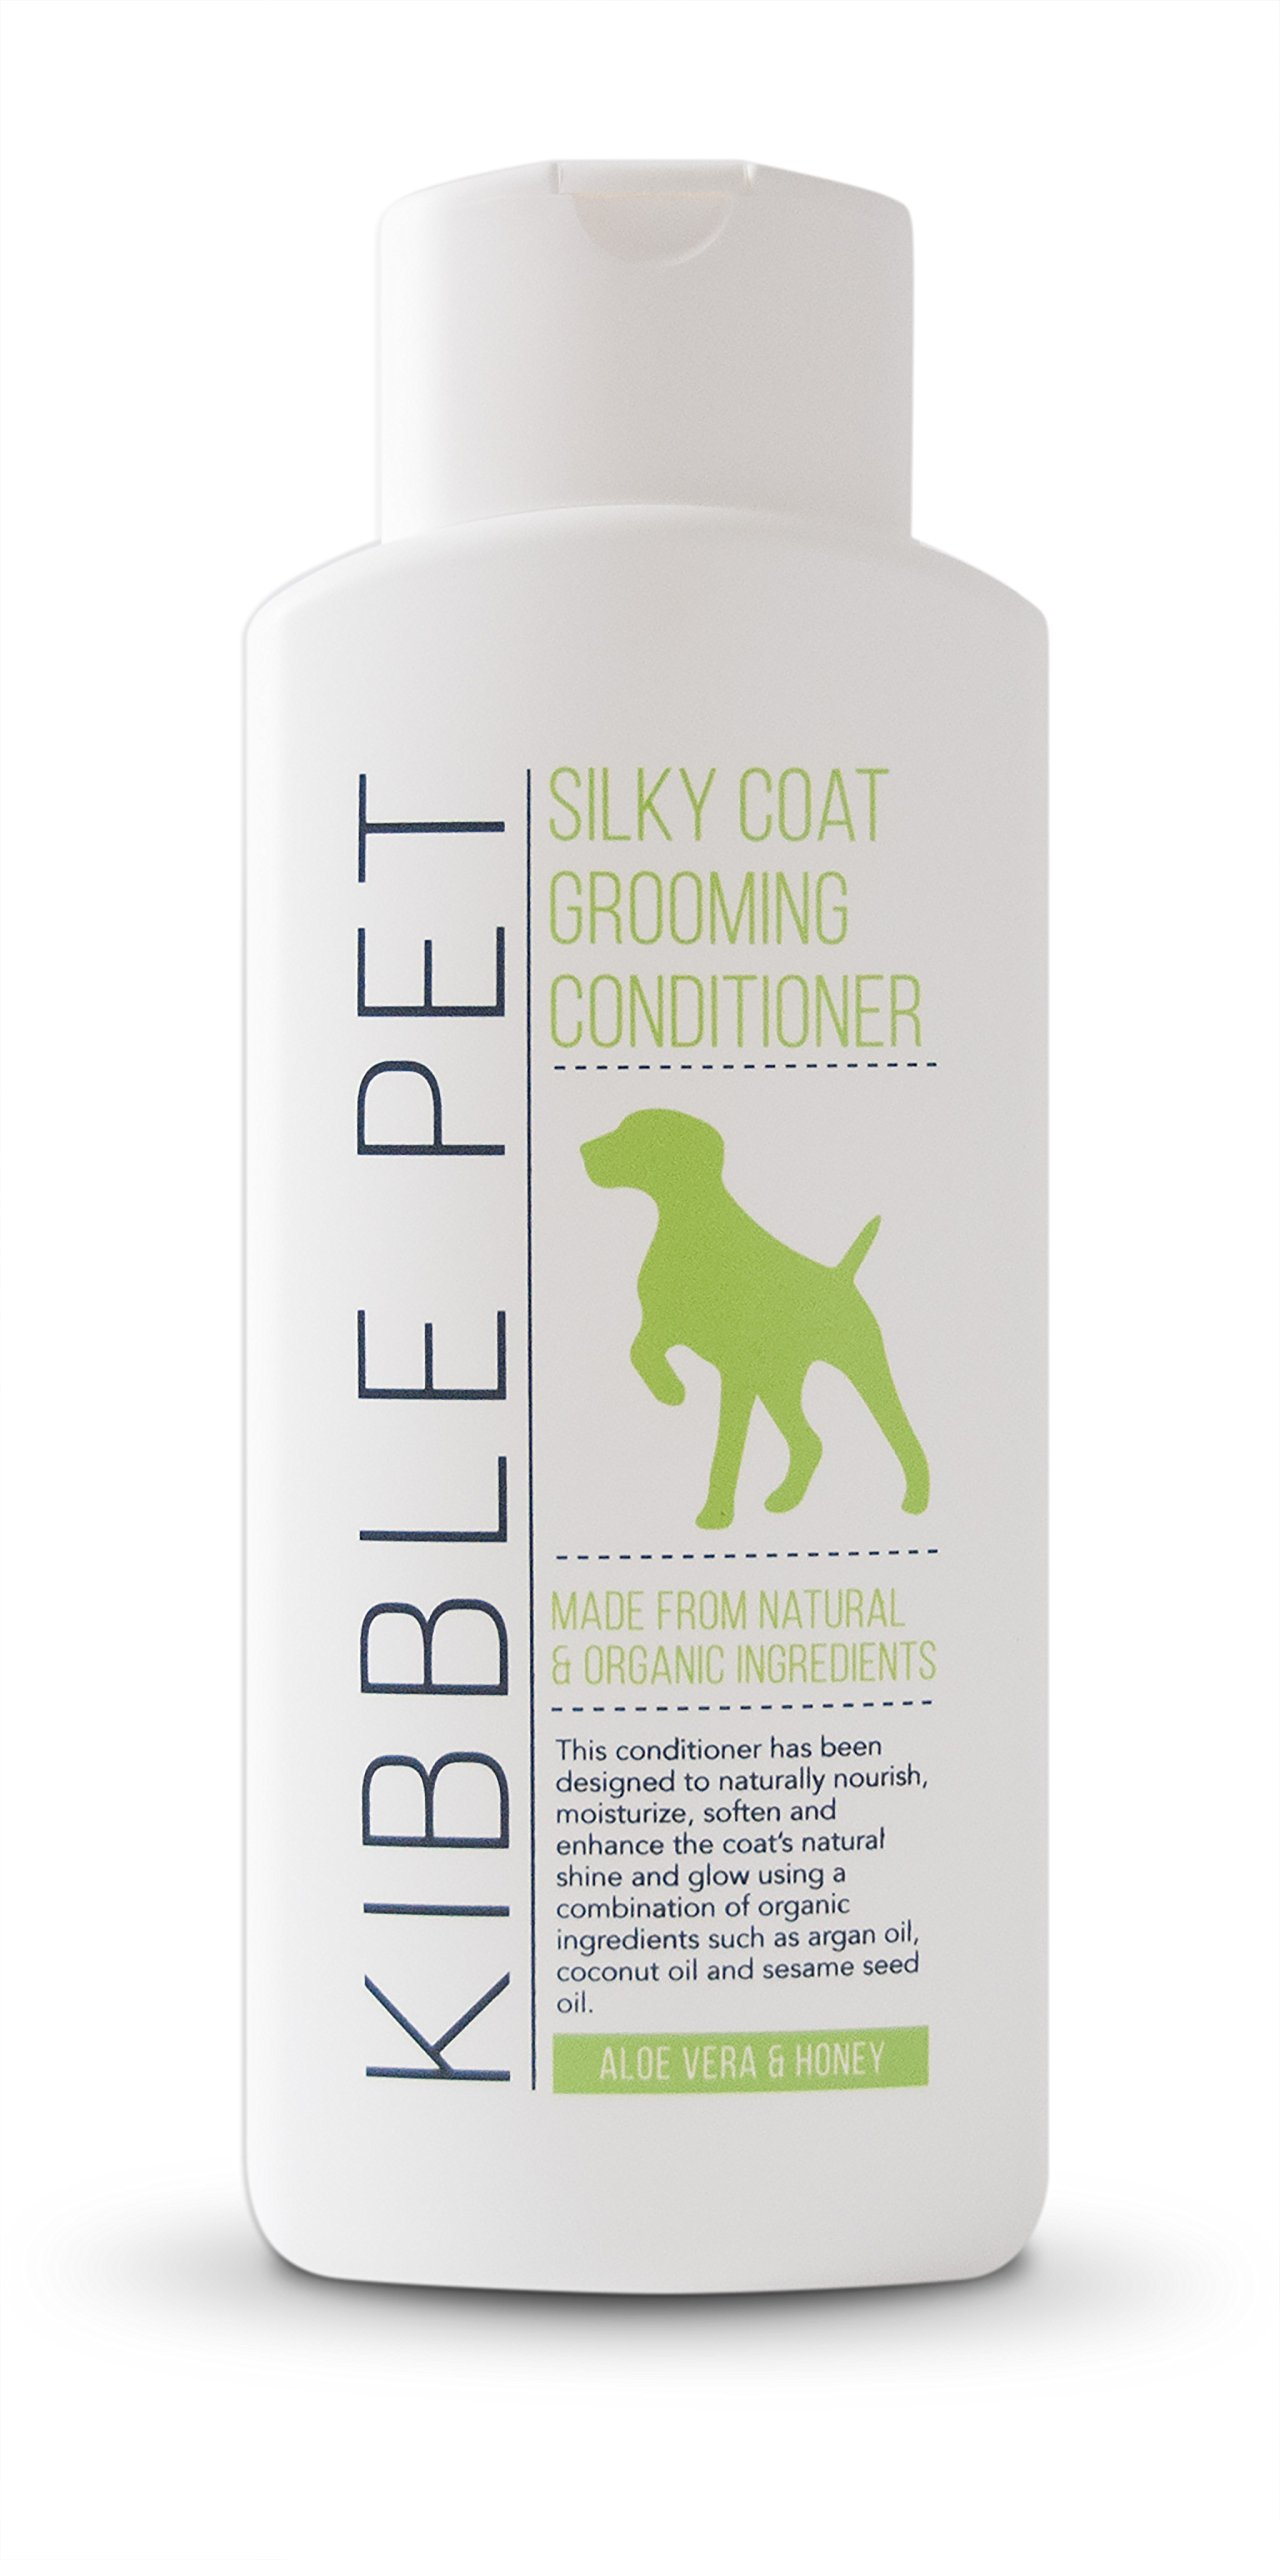 Kibble Pet Silky Coat Grooming Conditioner, Aloe Vera and Honey (13.5 Ounces)